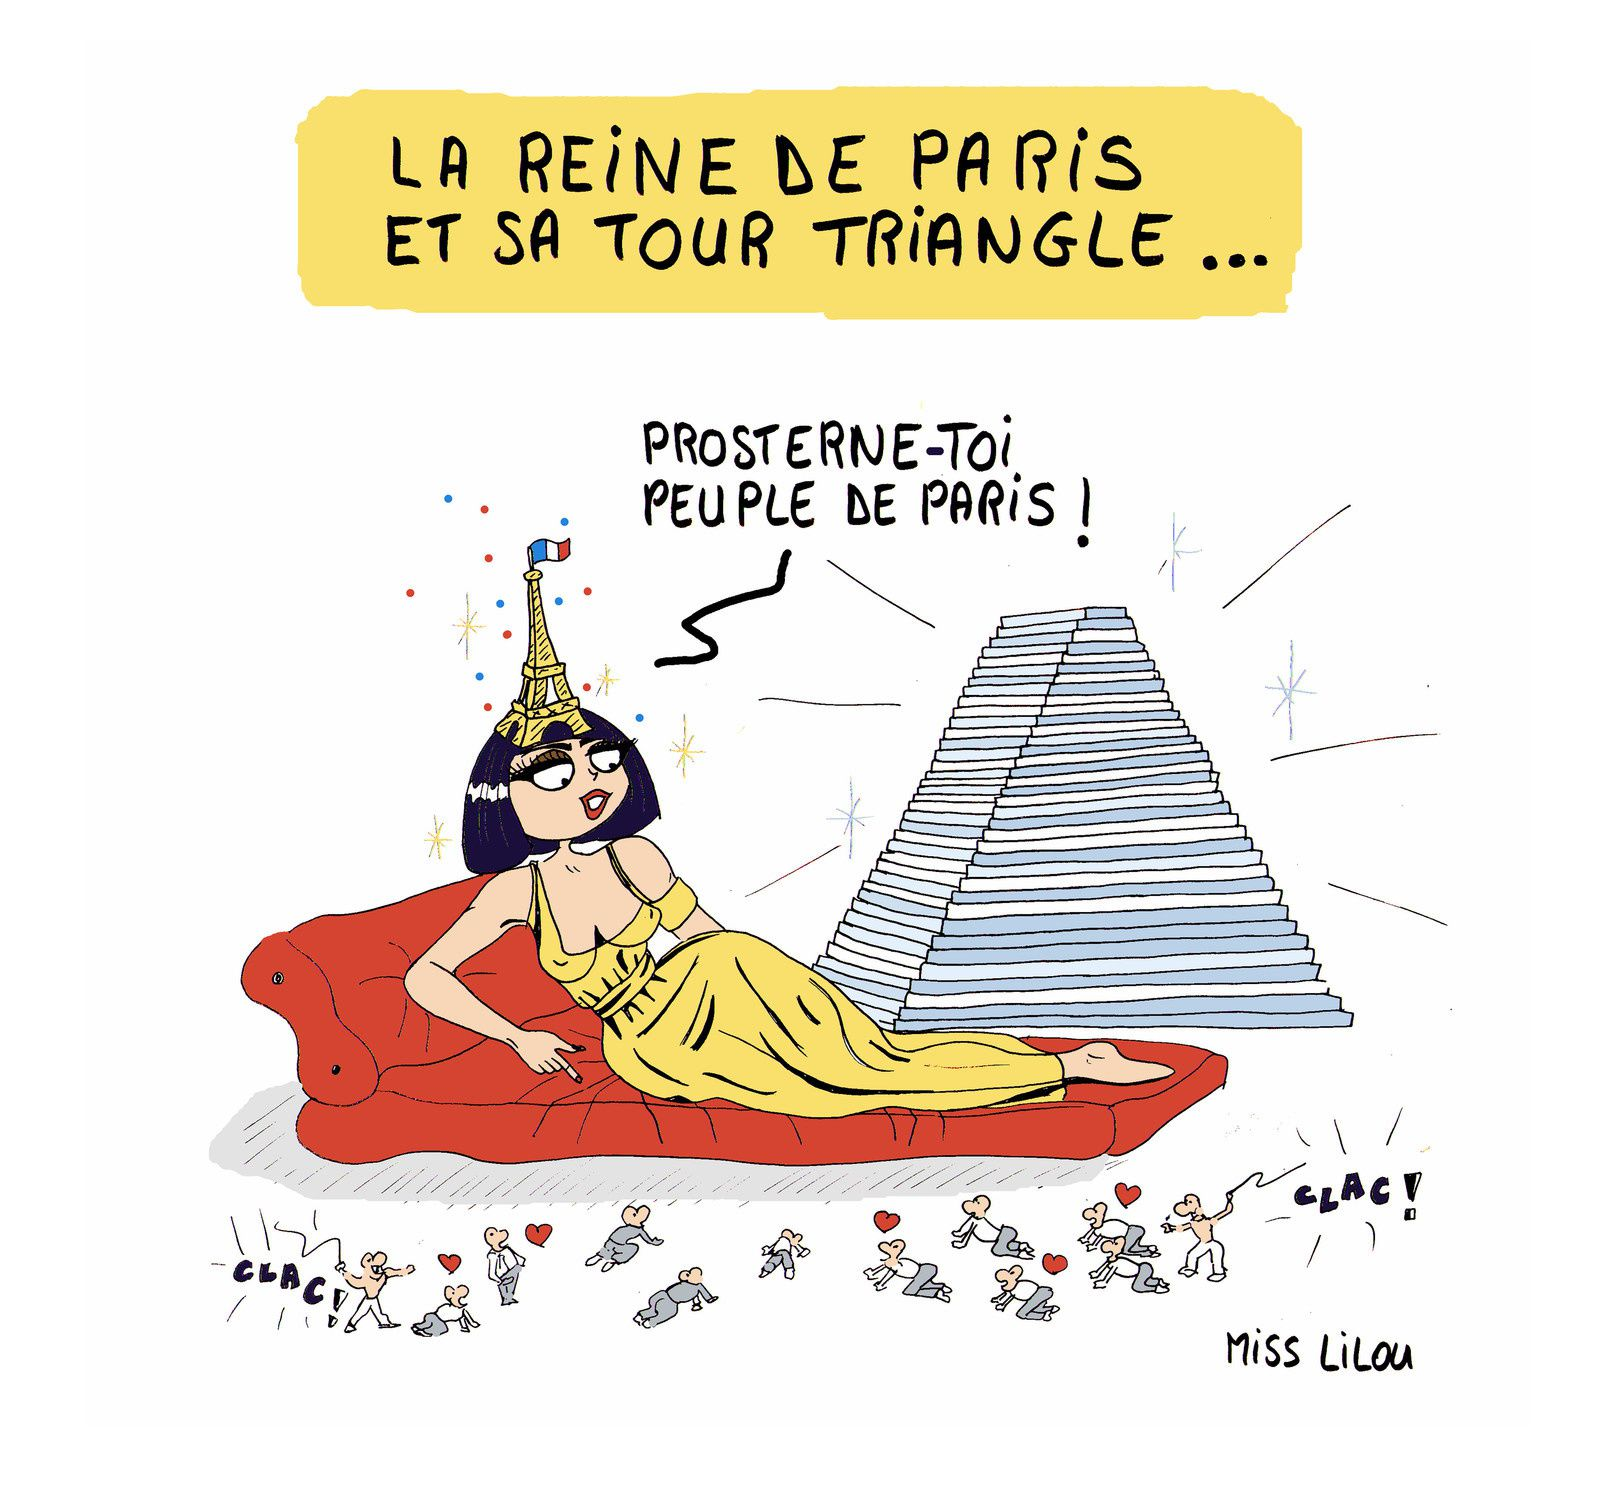 La Reine de Paris et sa Tour Triangle...